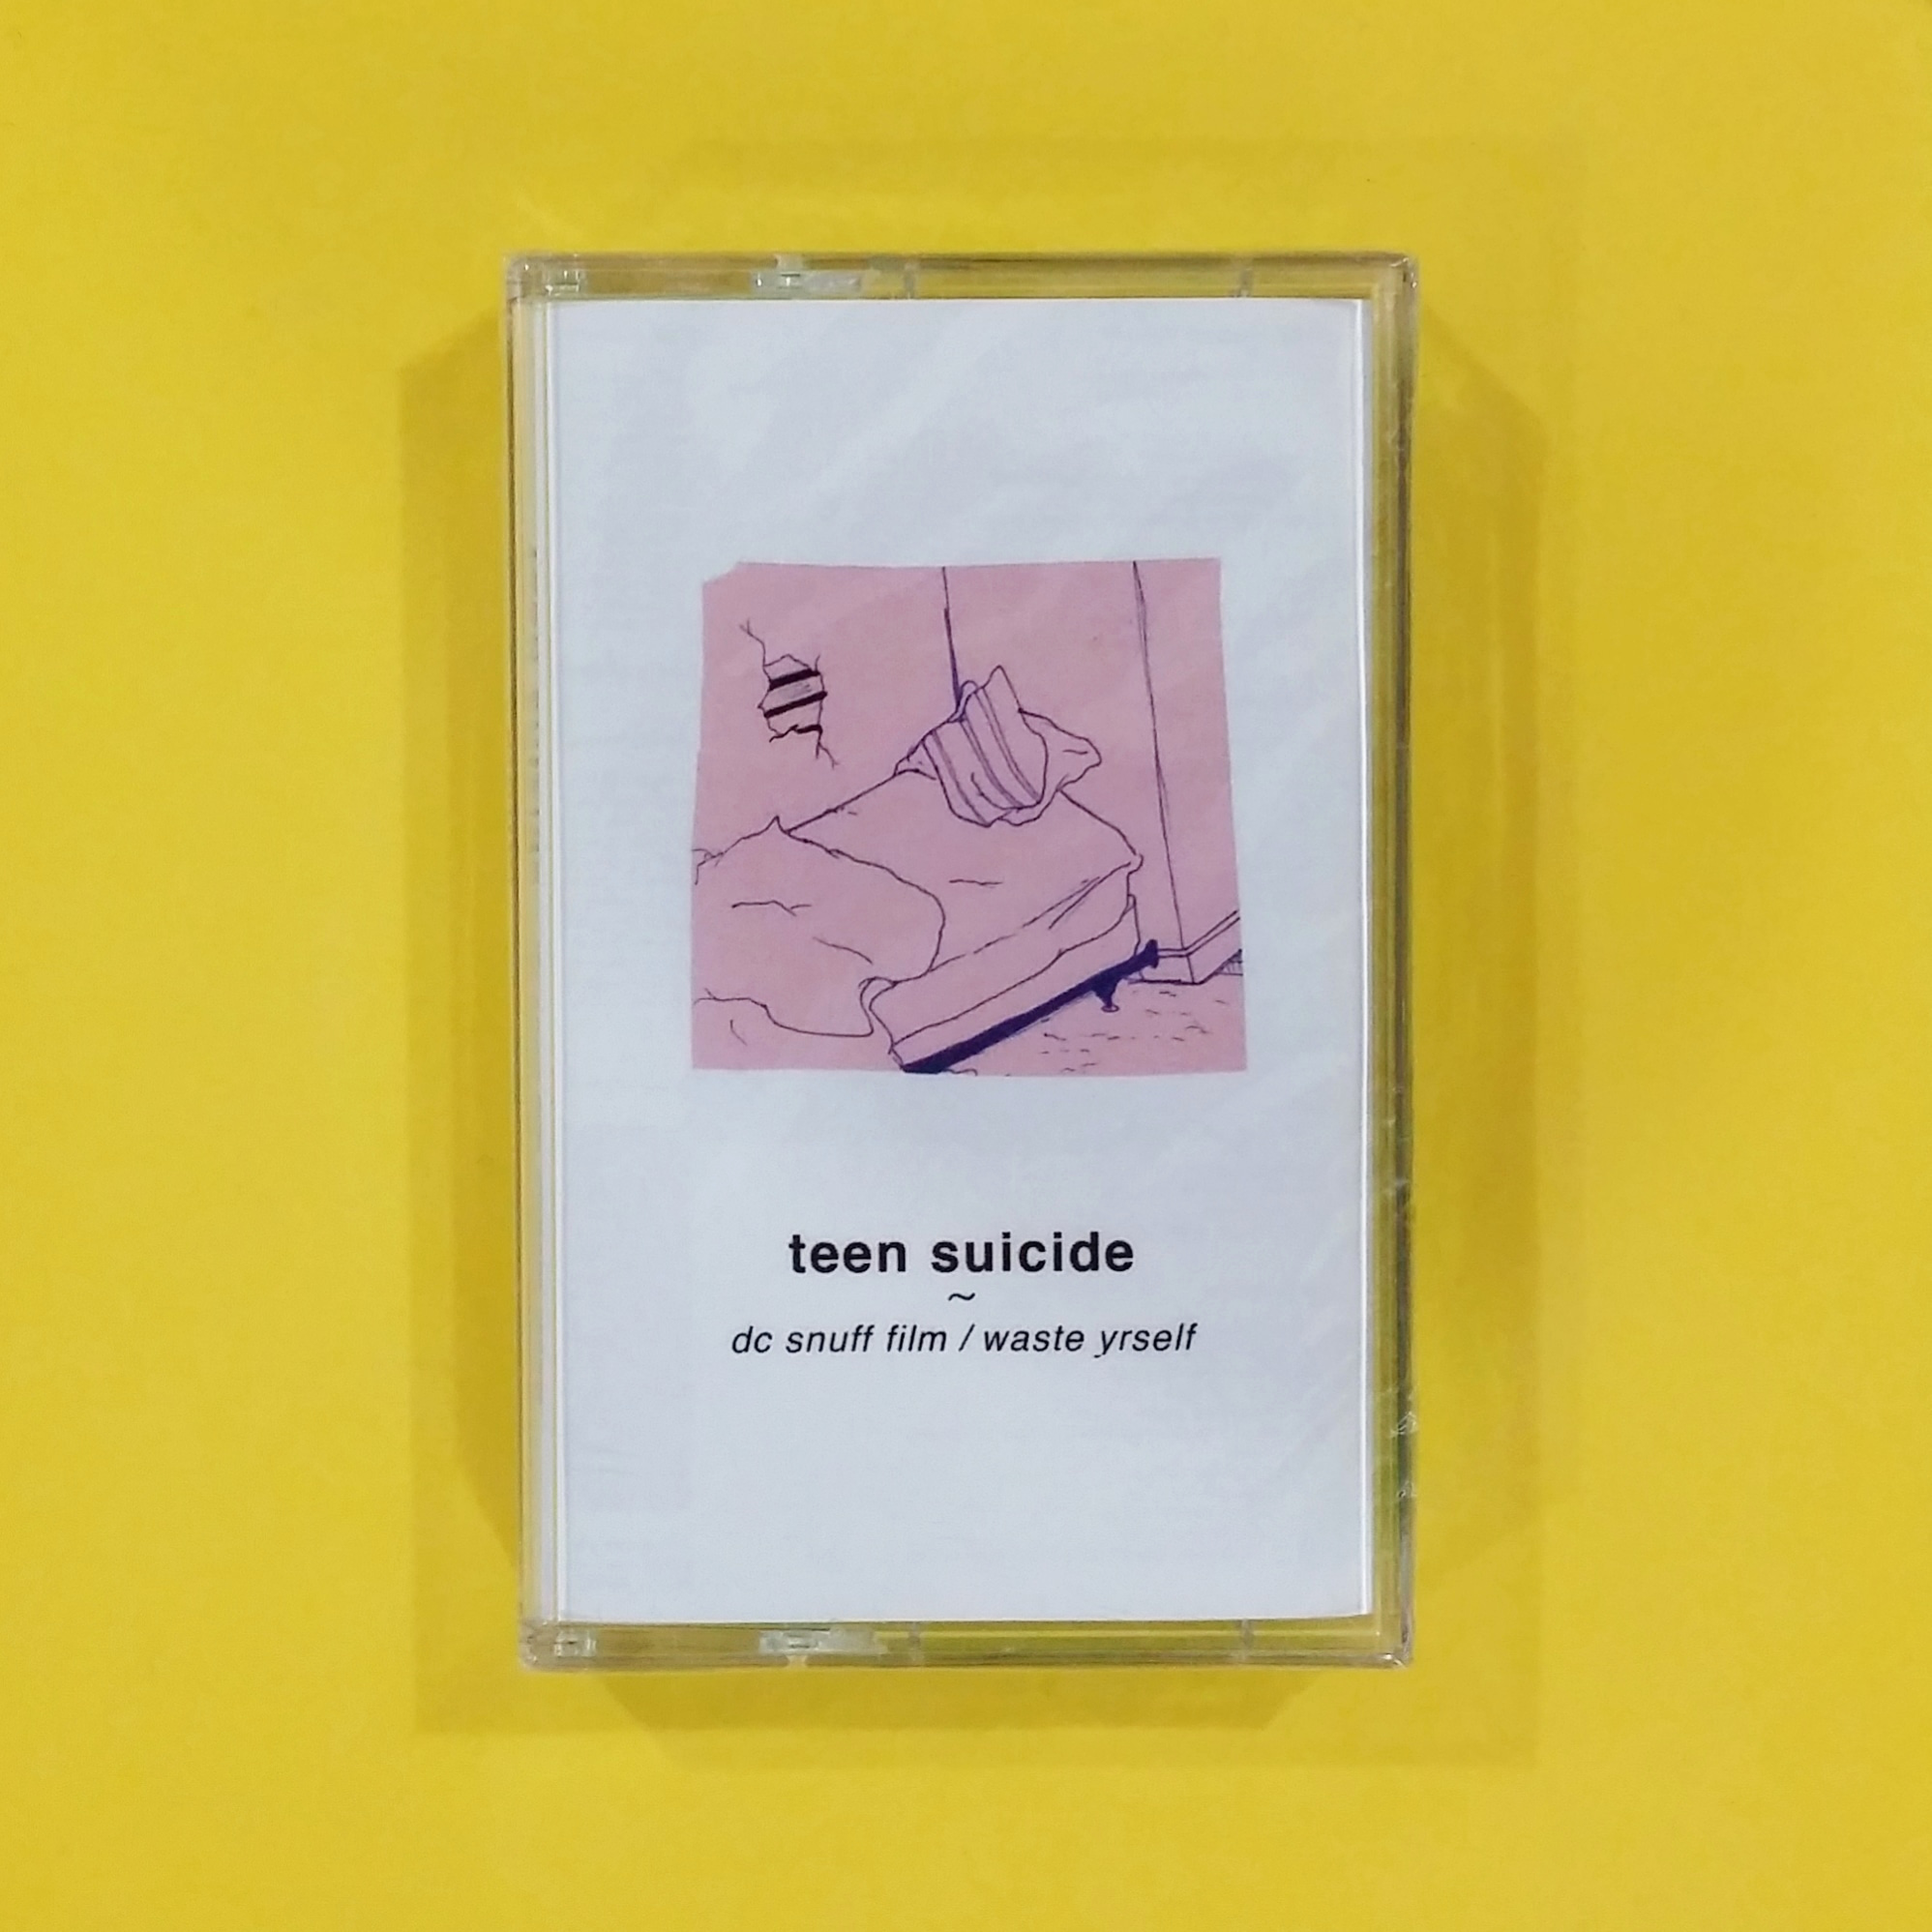 teen suicide - dc snuff film / waste yrself (Run for Cover Records)